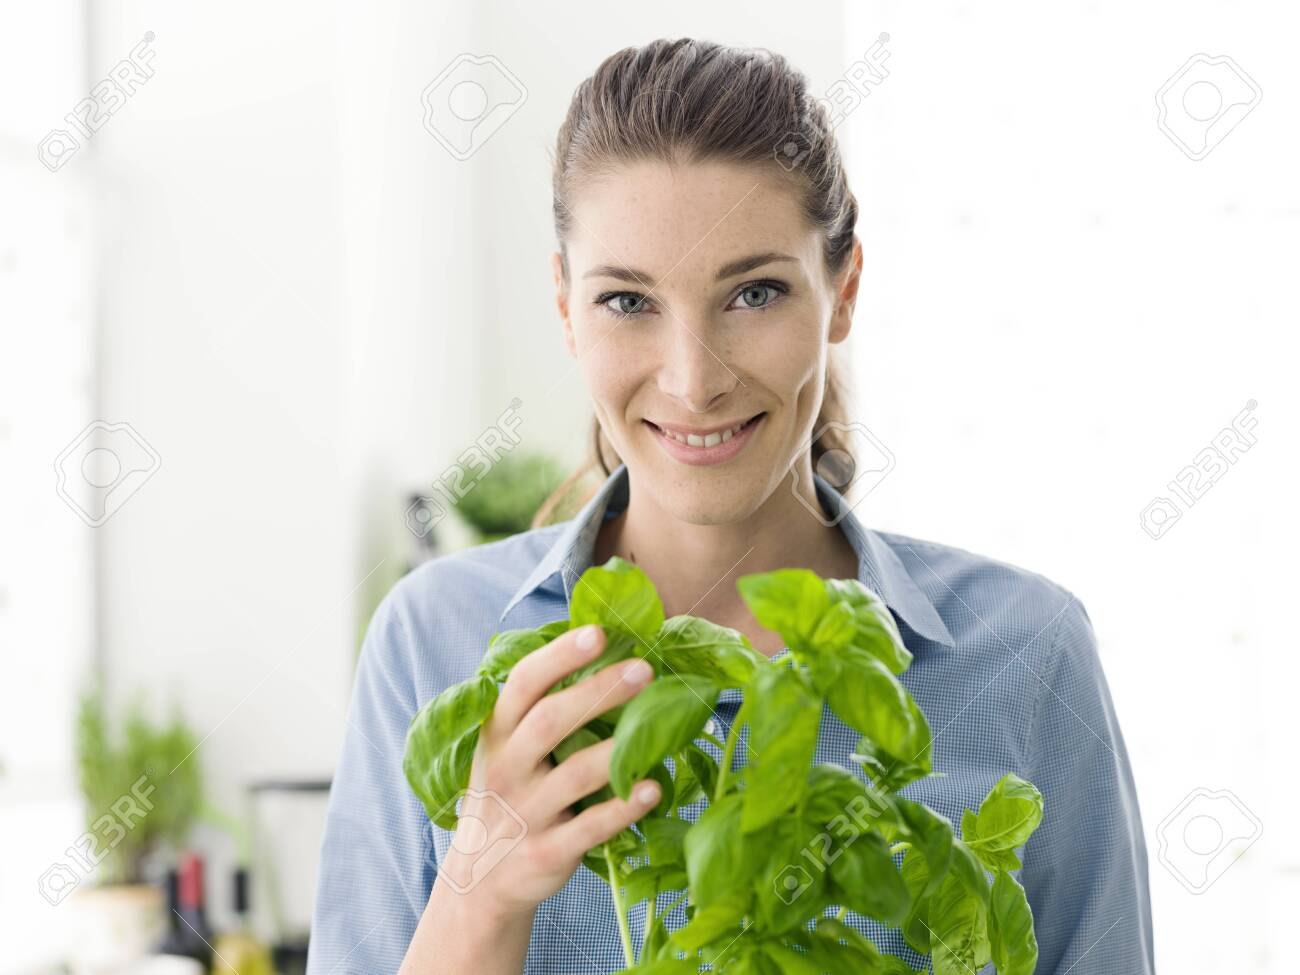 Young woman growing fresh herbs at home, she is holding a plant of basil and smiling at camera - 145967087